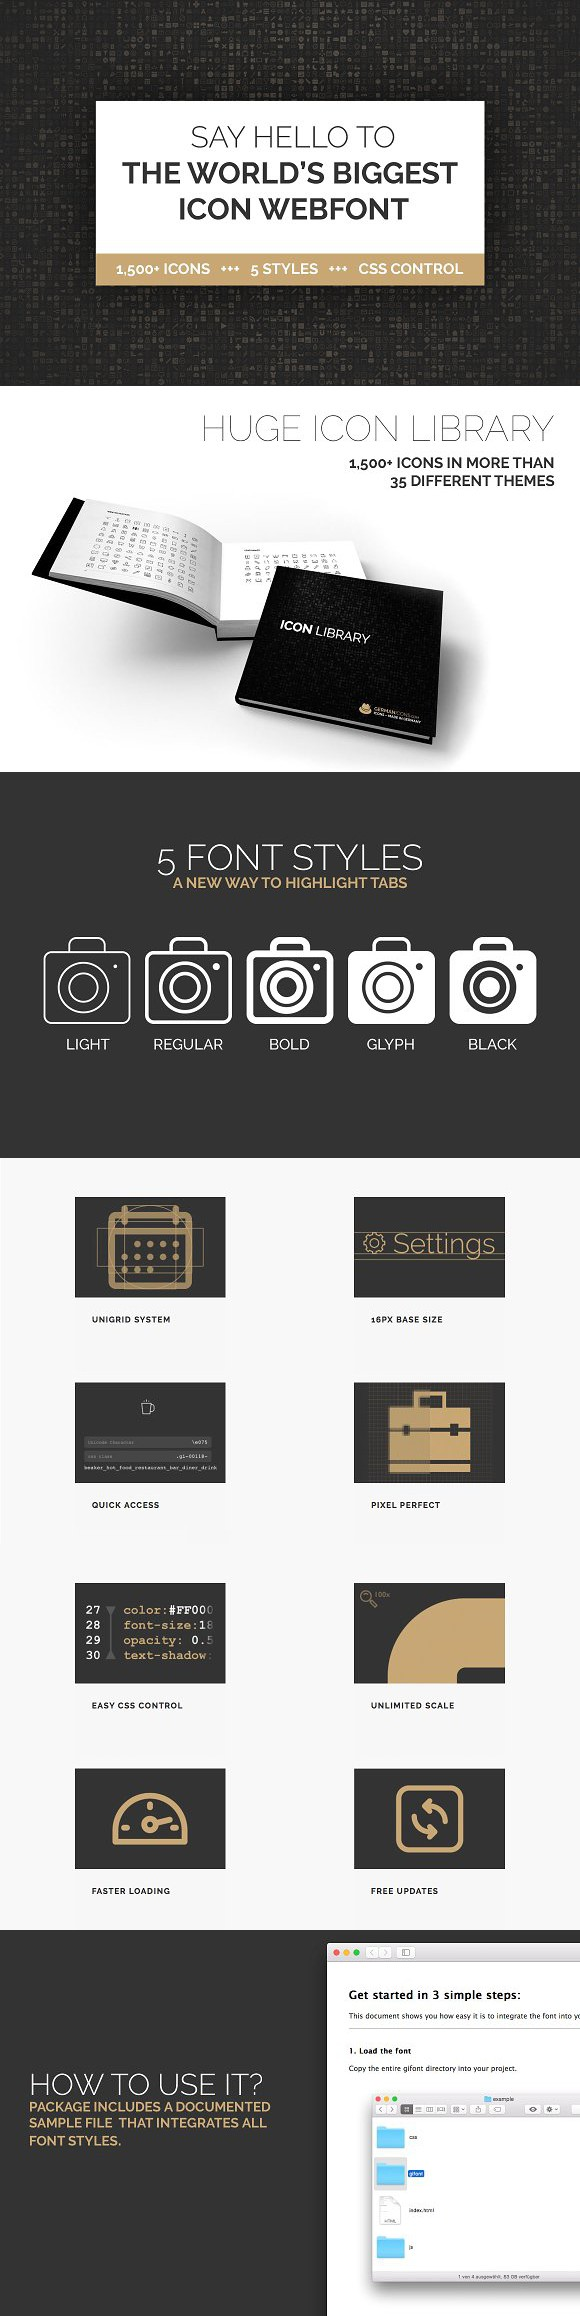 1500 Icon Webfont In 5 Styles Icons Fonts And Web Application